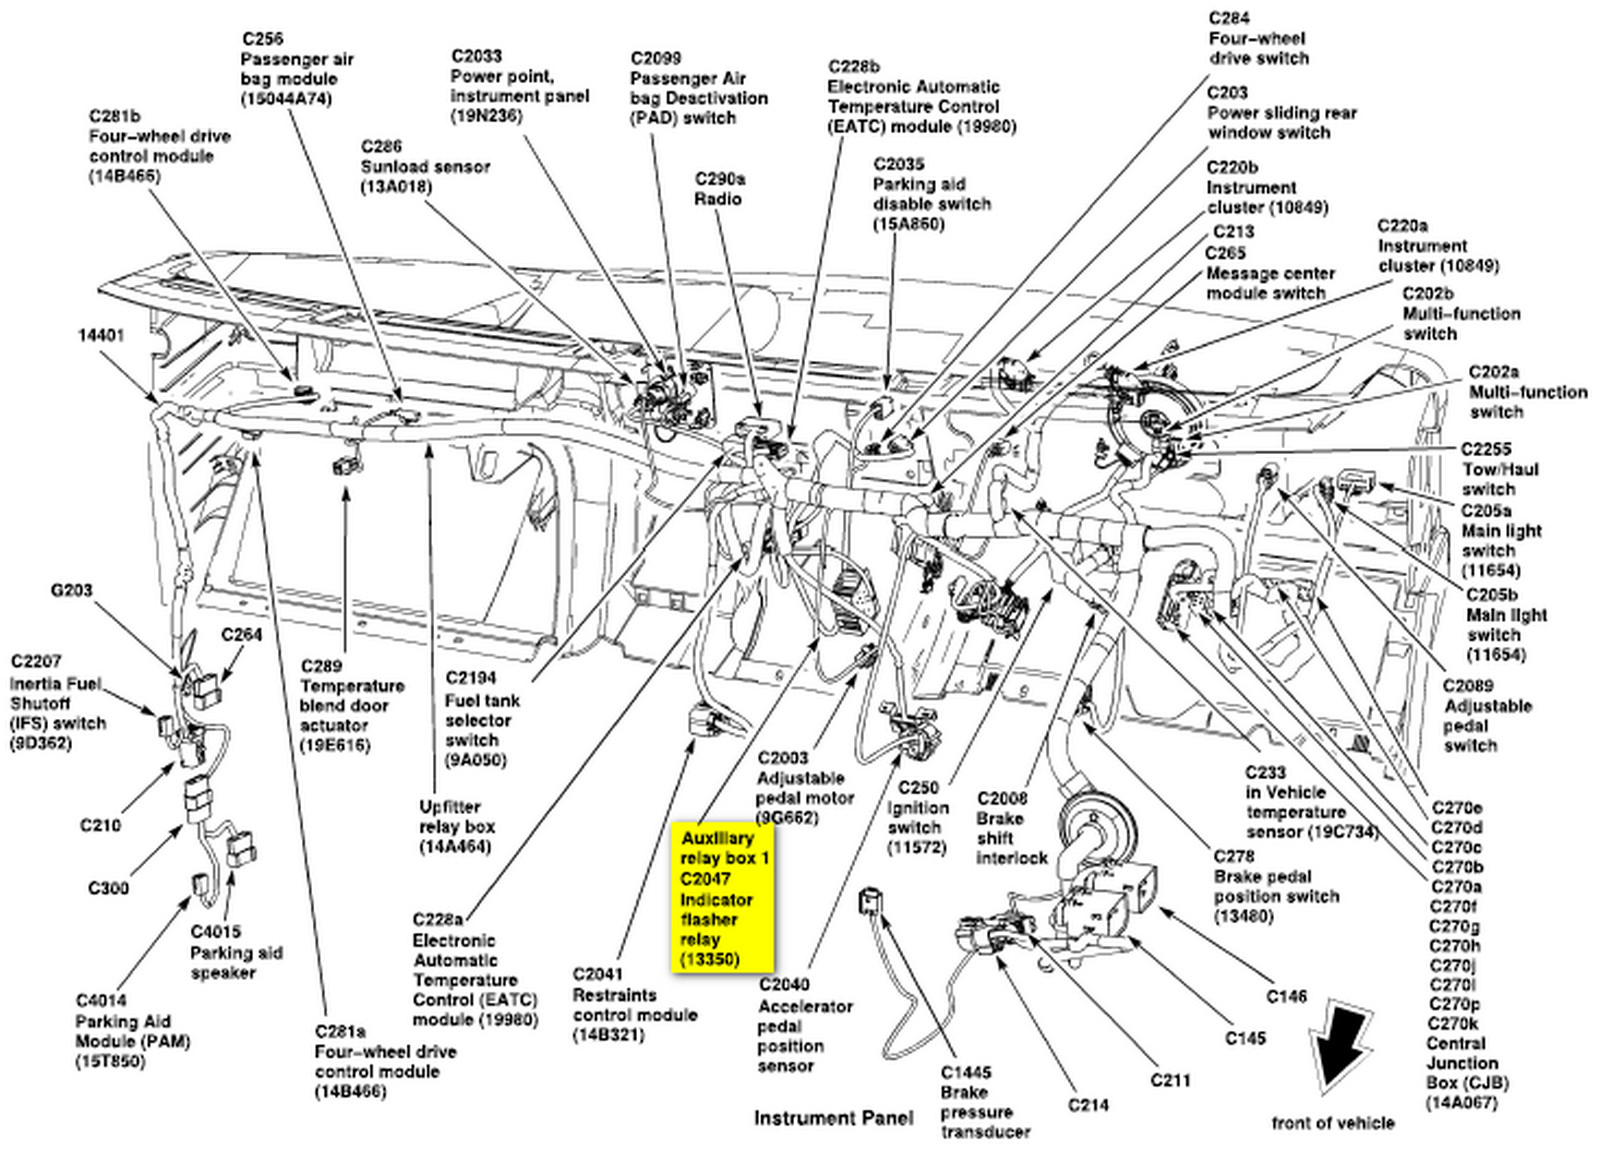 maf iat wiring diagram 2003 f250